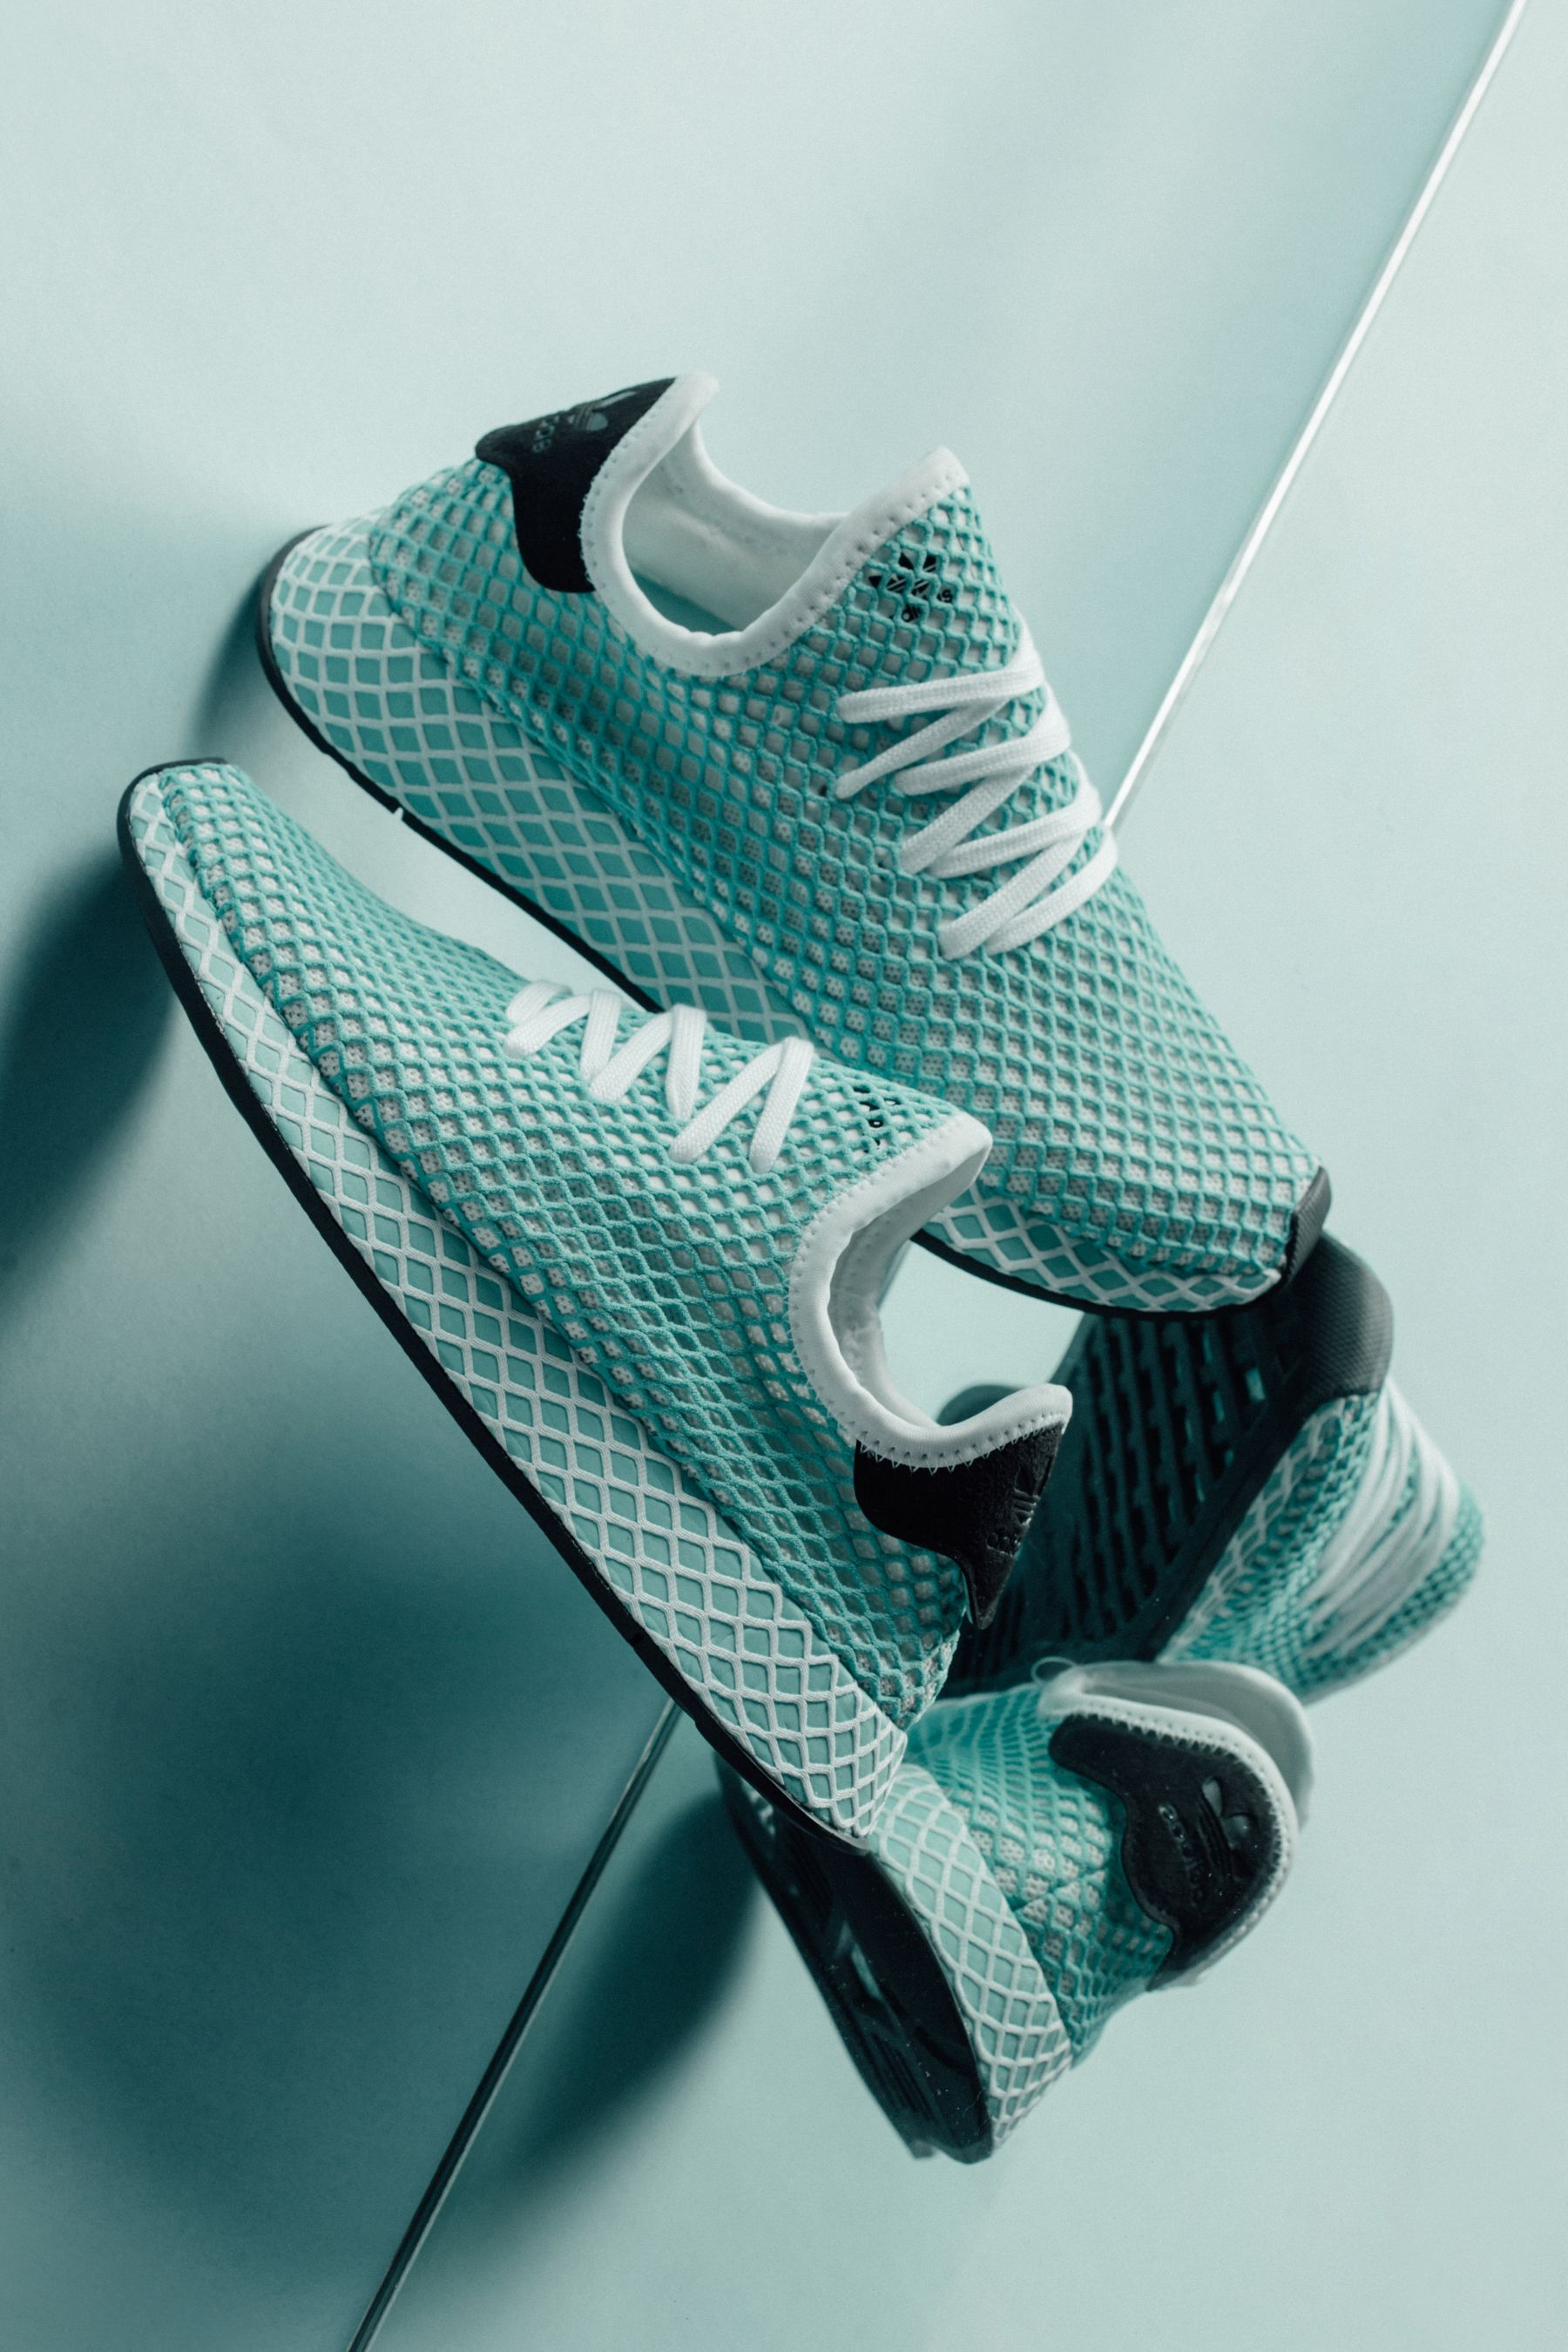 956adf58d Adidas x Parley Women s Deerupt Runner Adidas Shoes